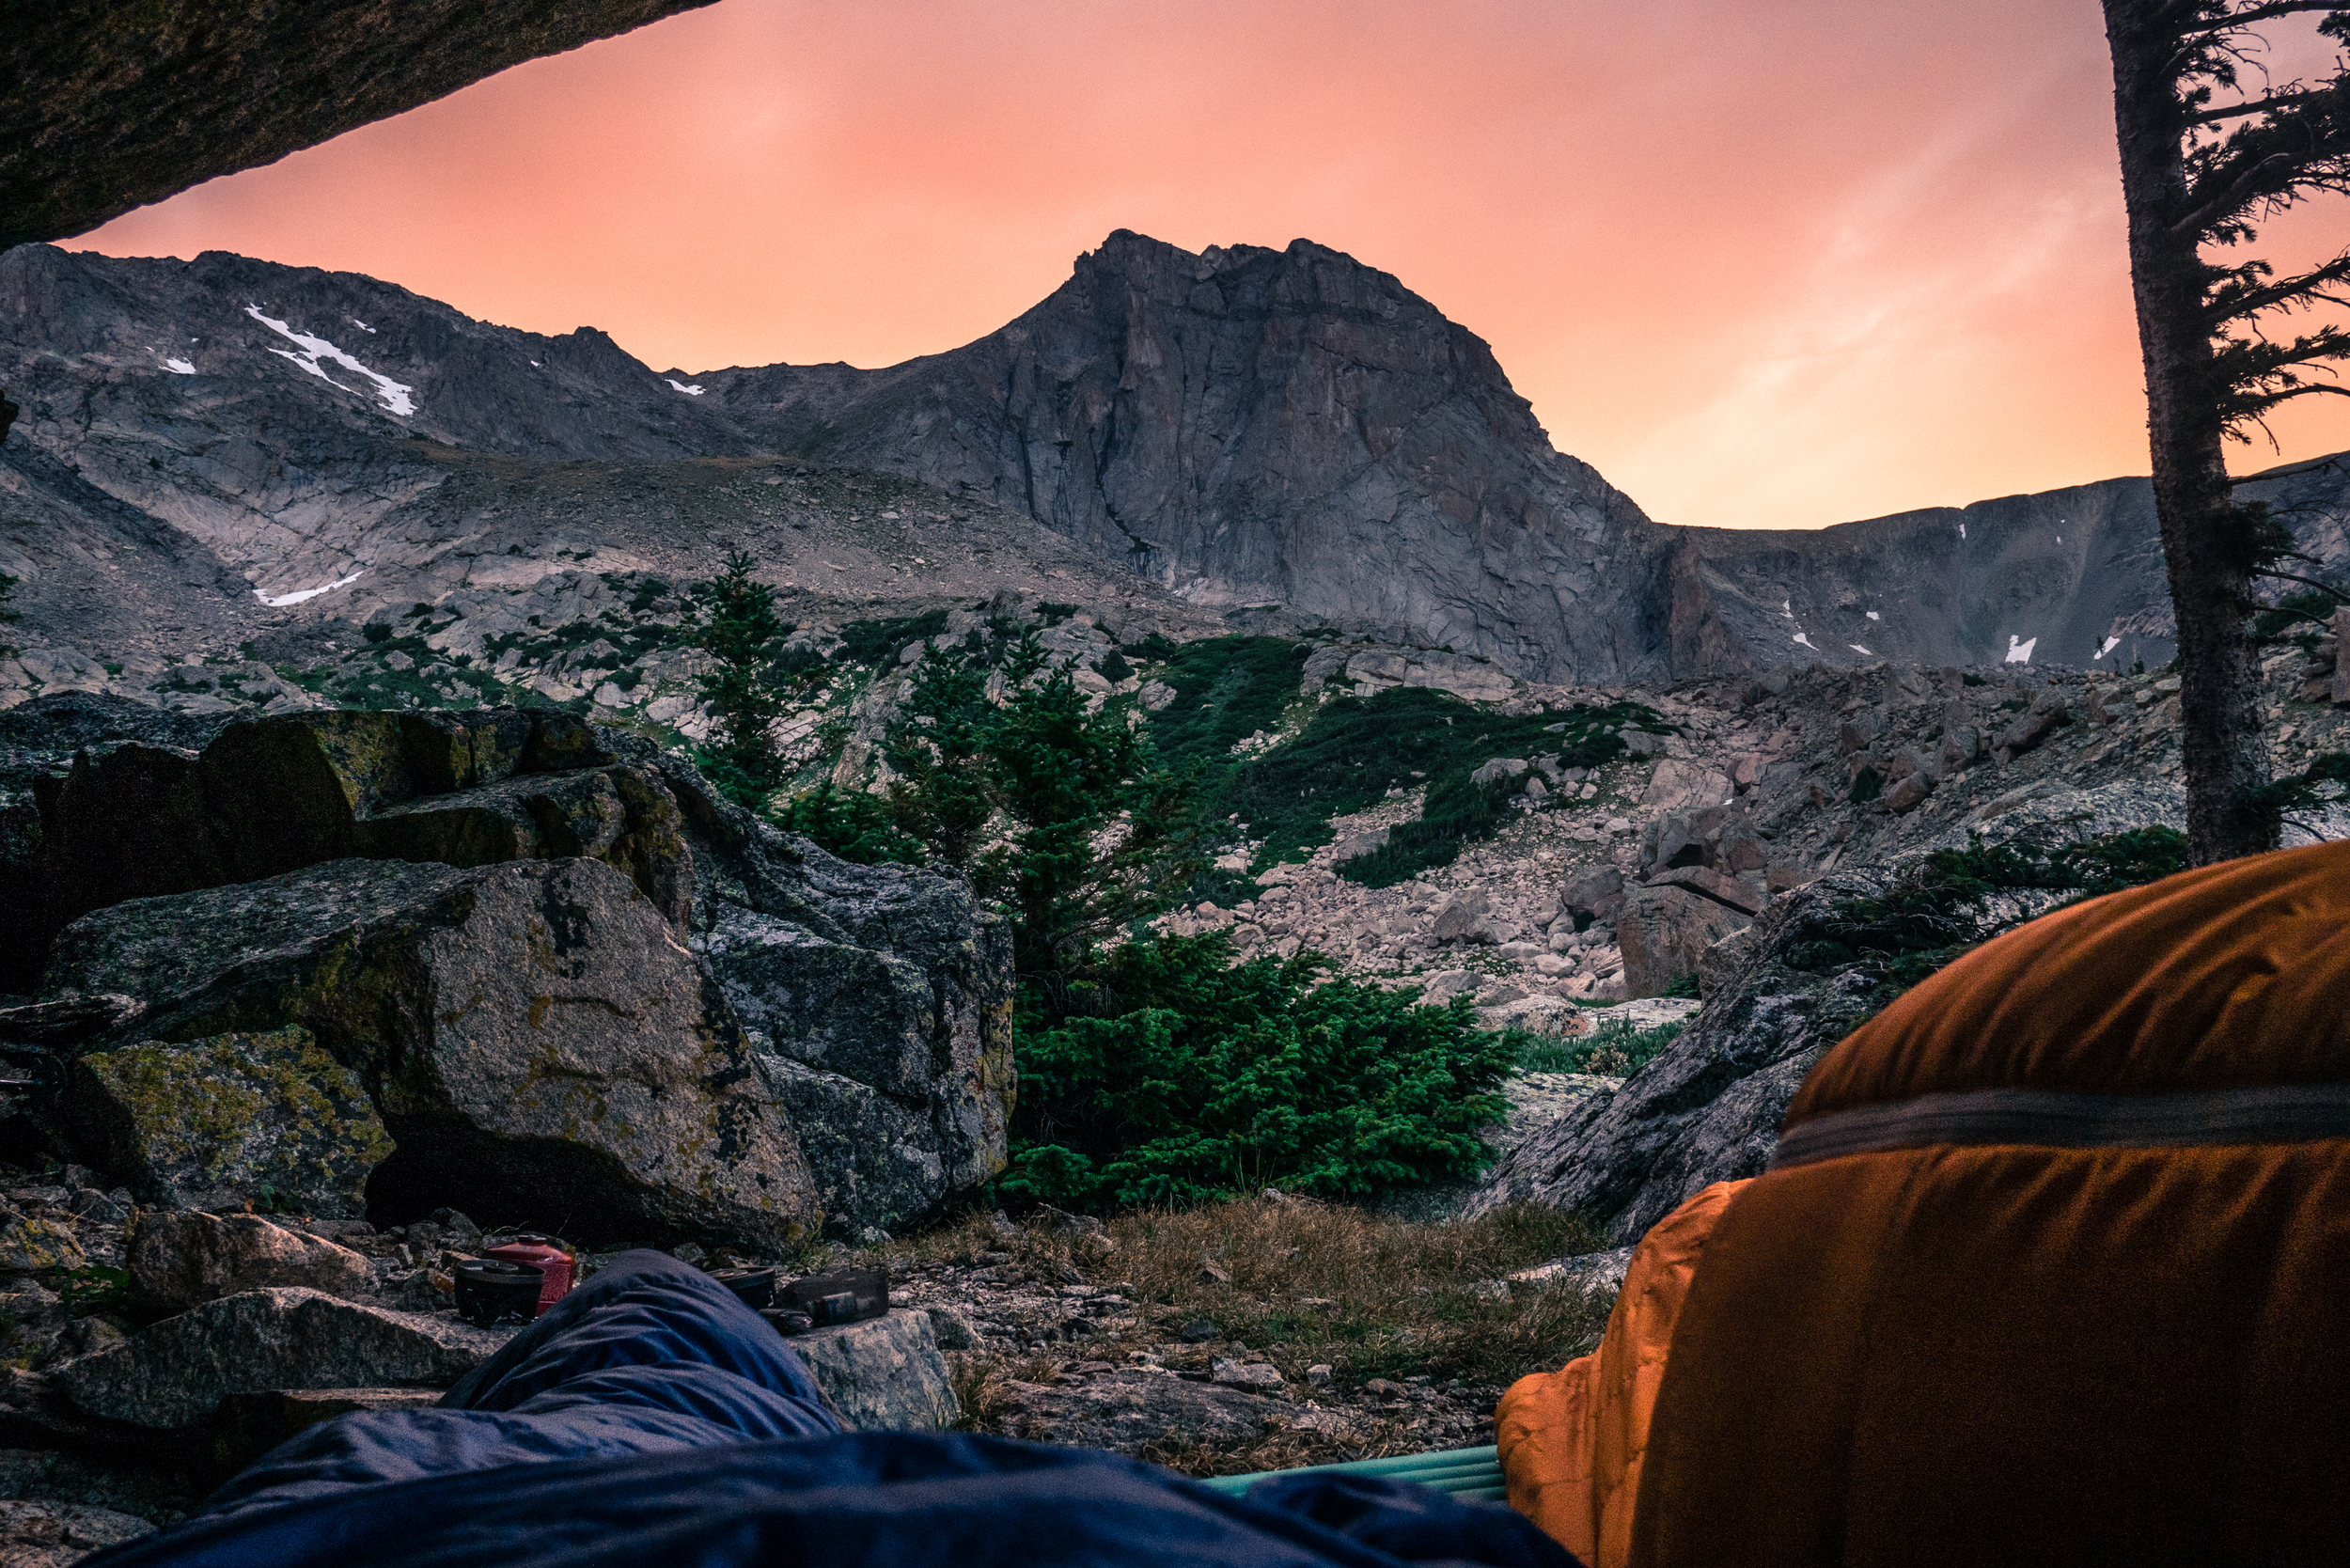 Bivouacking below the east face of Mt. Alice